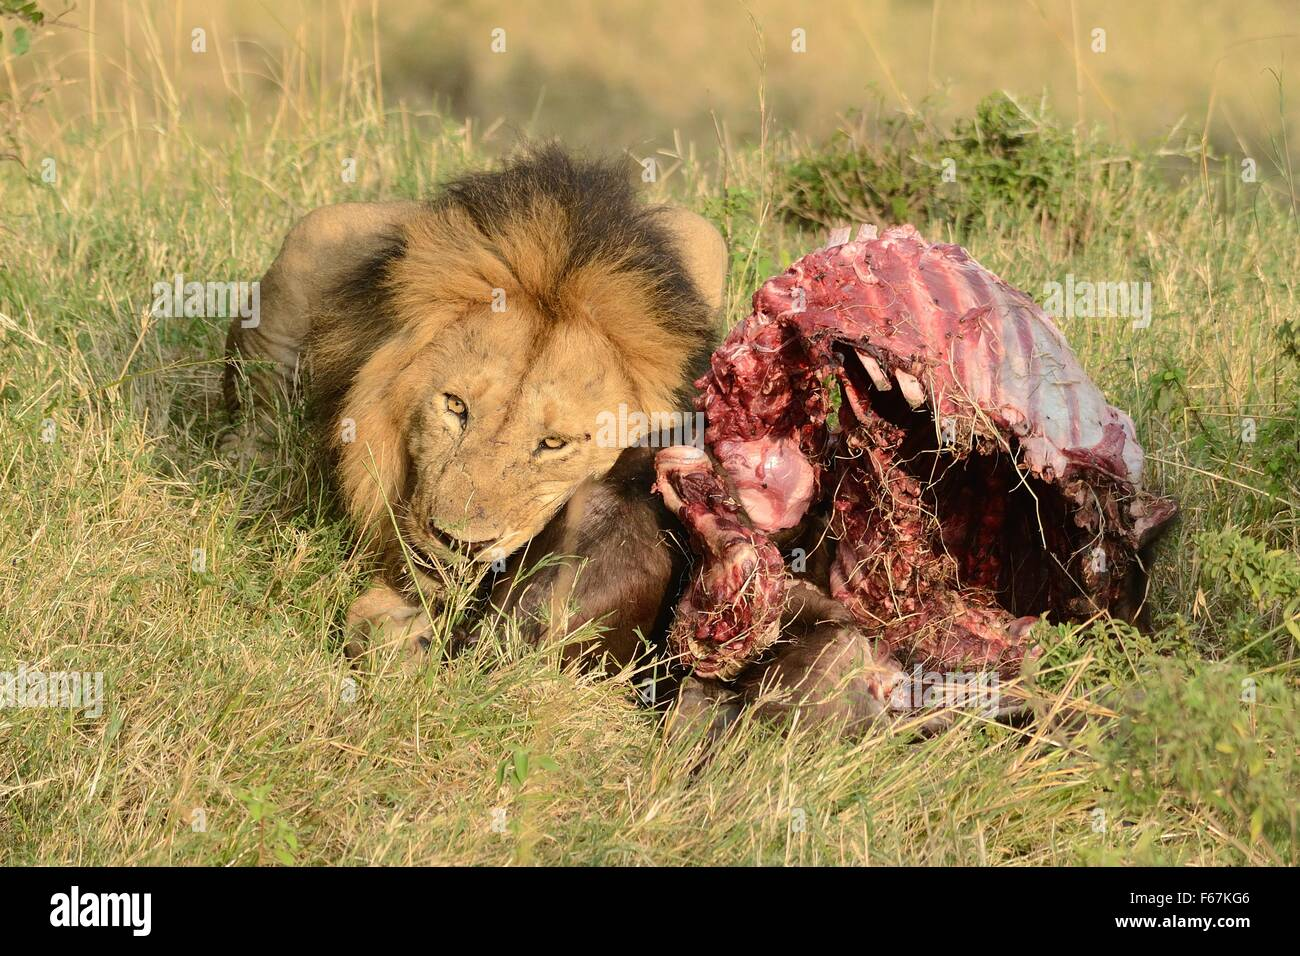 Male Lion with its prey in the Masai Mara reserve, Kenya. - Stock Image